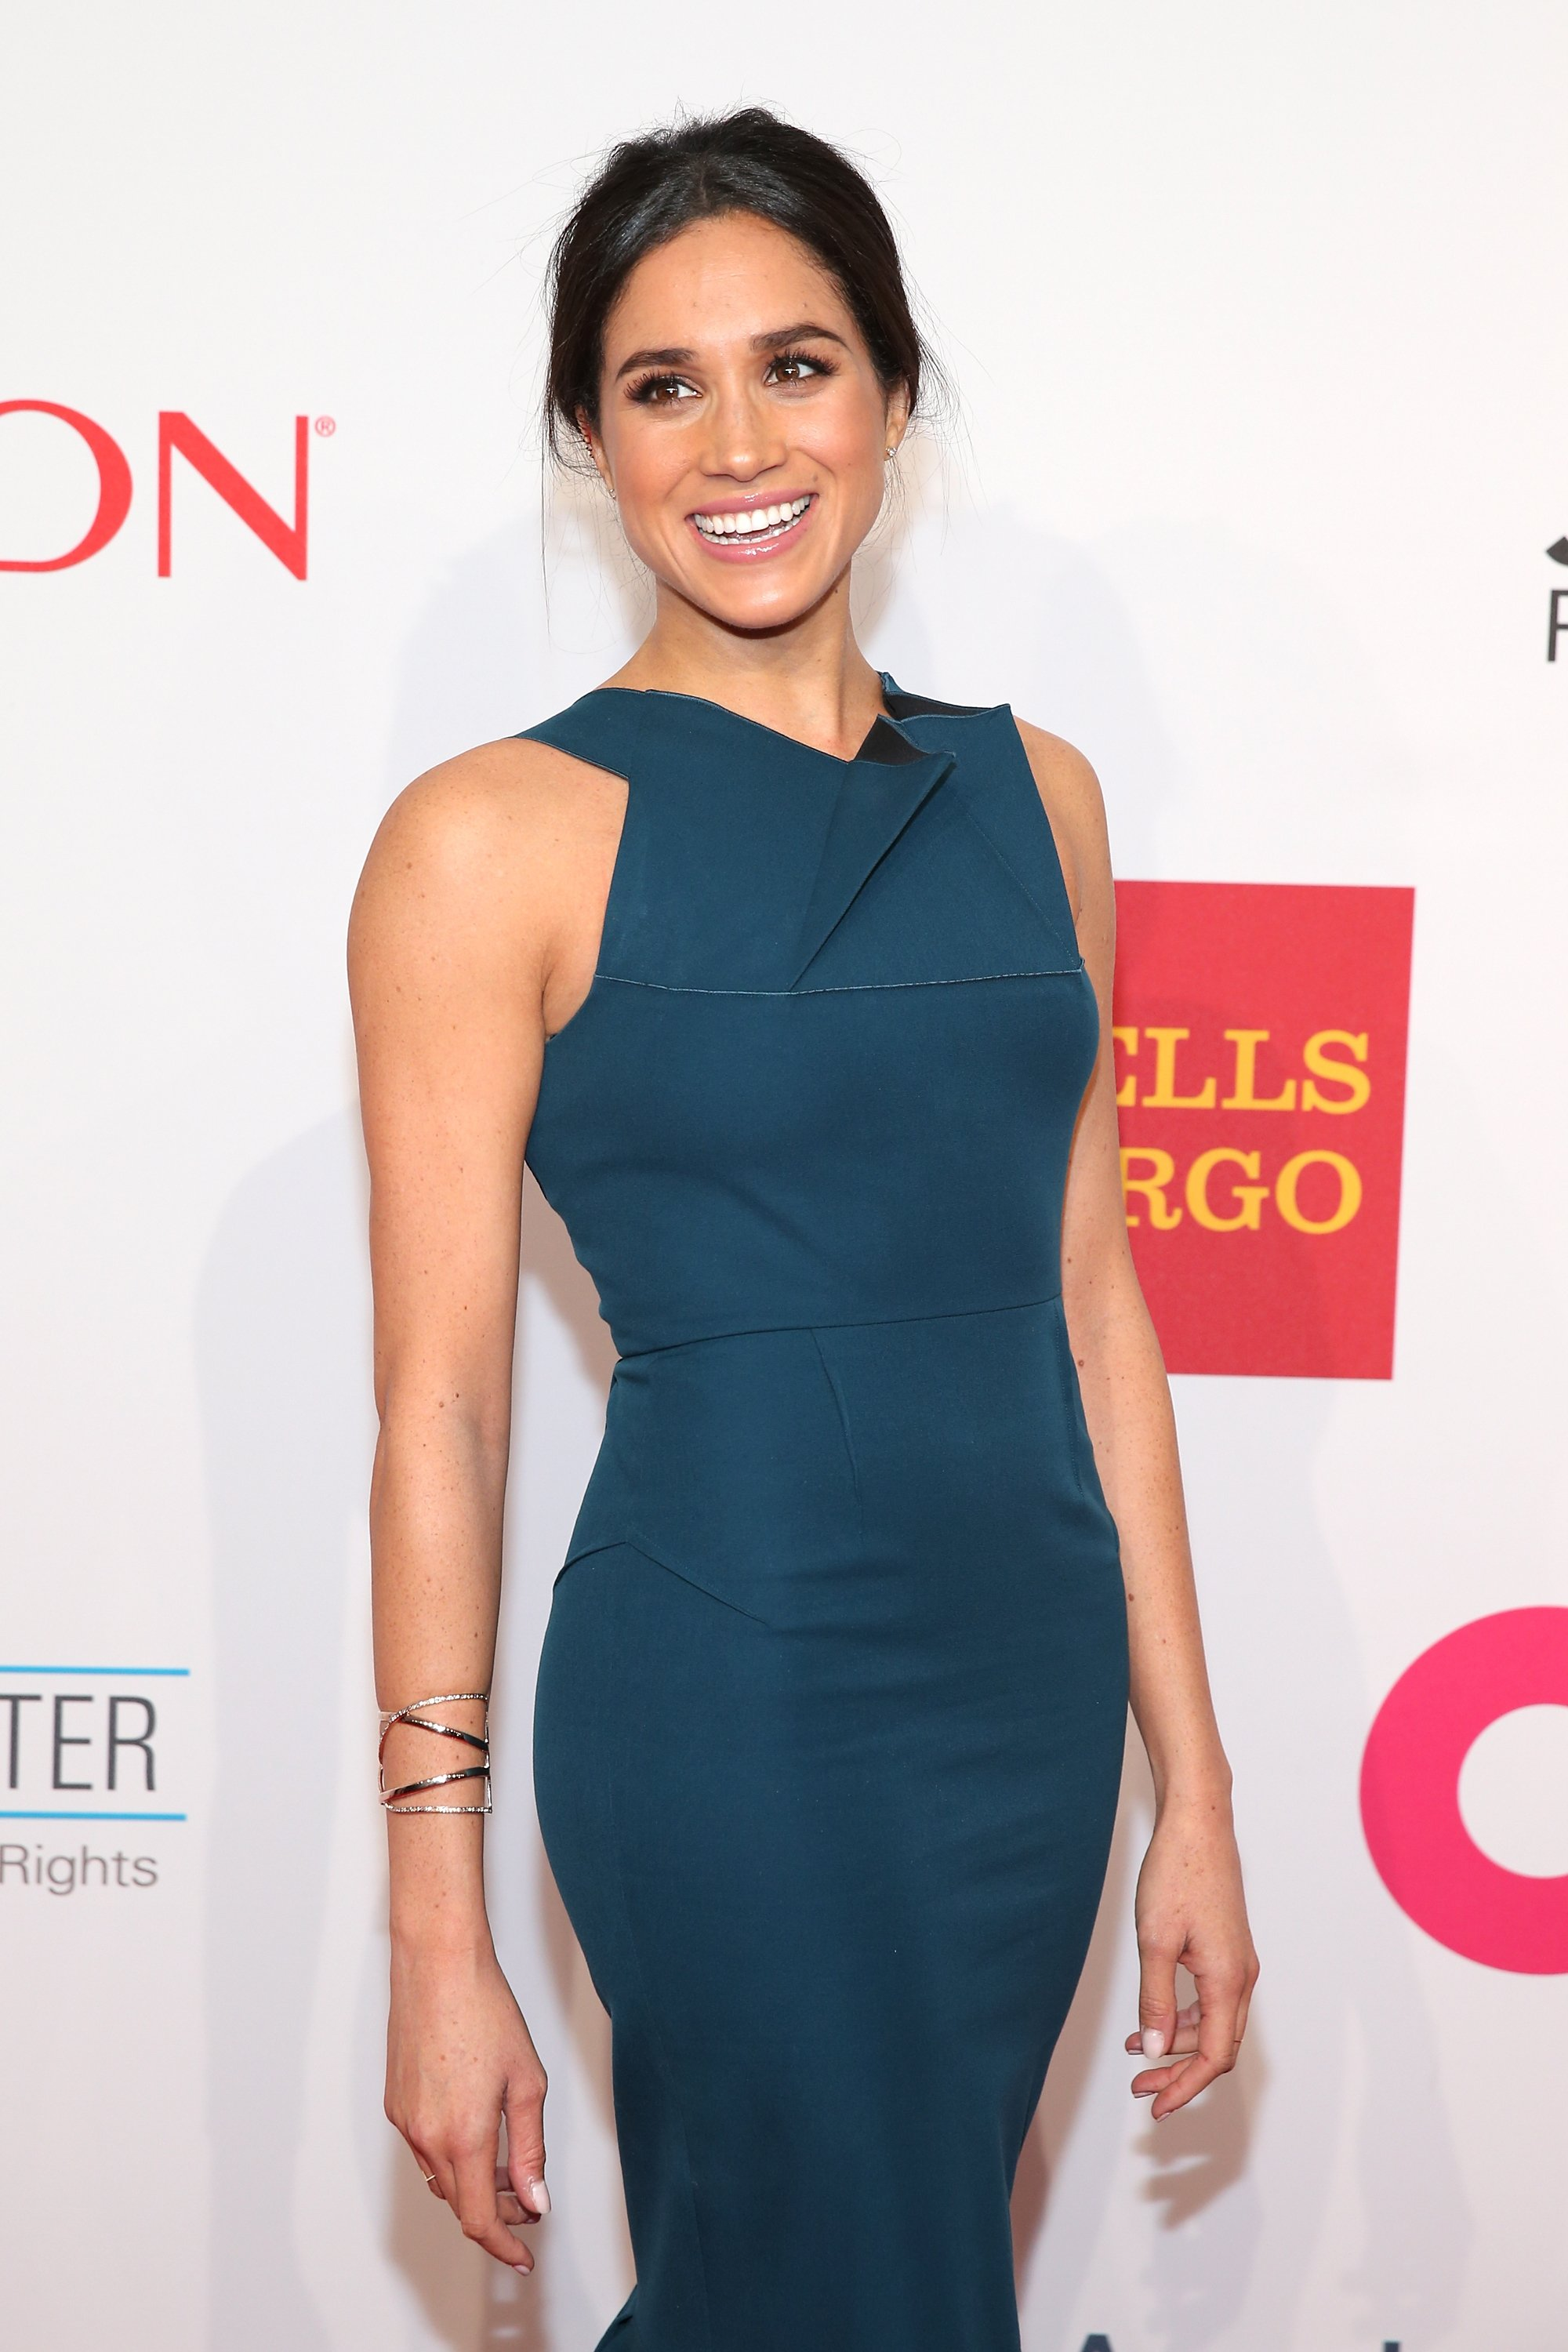 Meghan Markle attends the Elton John AIDS Foundation's 13th Annual An Enduring Vision Benefit at Cipriani Wall Street powered by CIROC Vodka on October 28, 2014, in New York City. | Source: Getty Images.